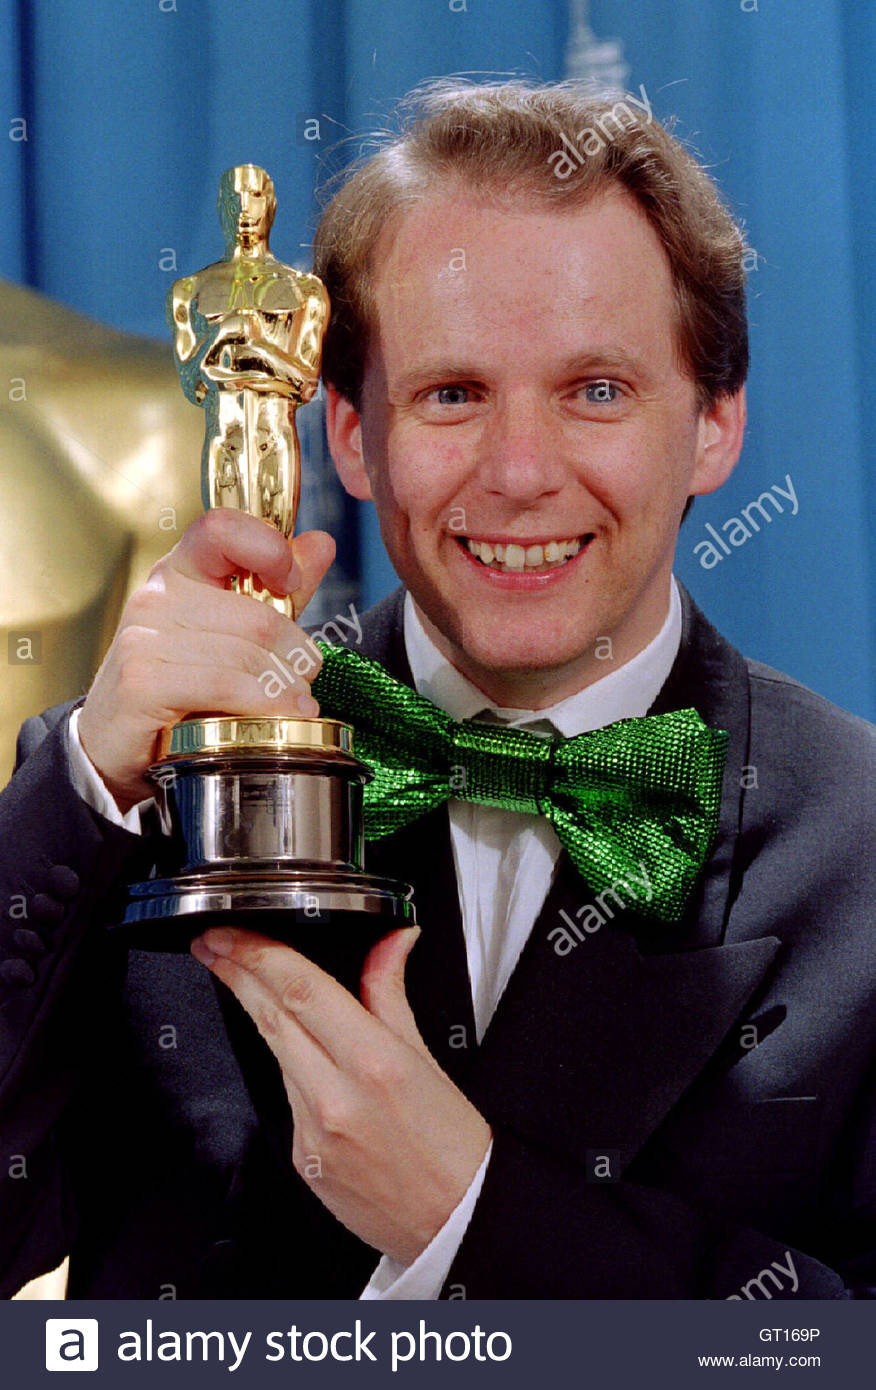 nick park married